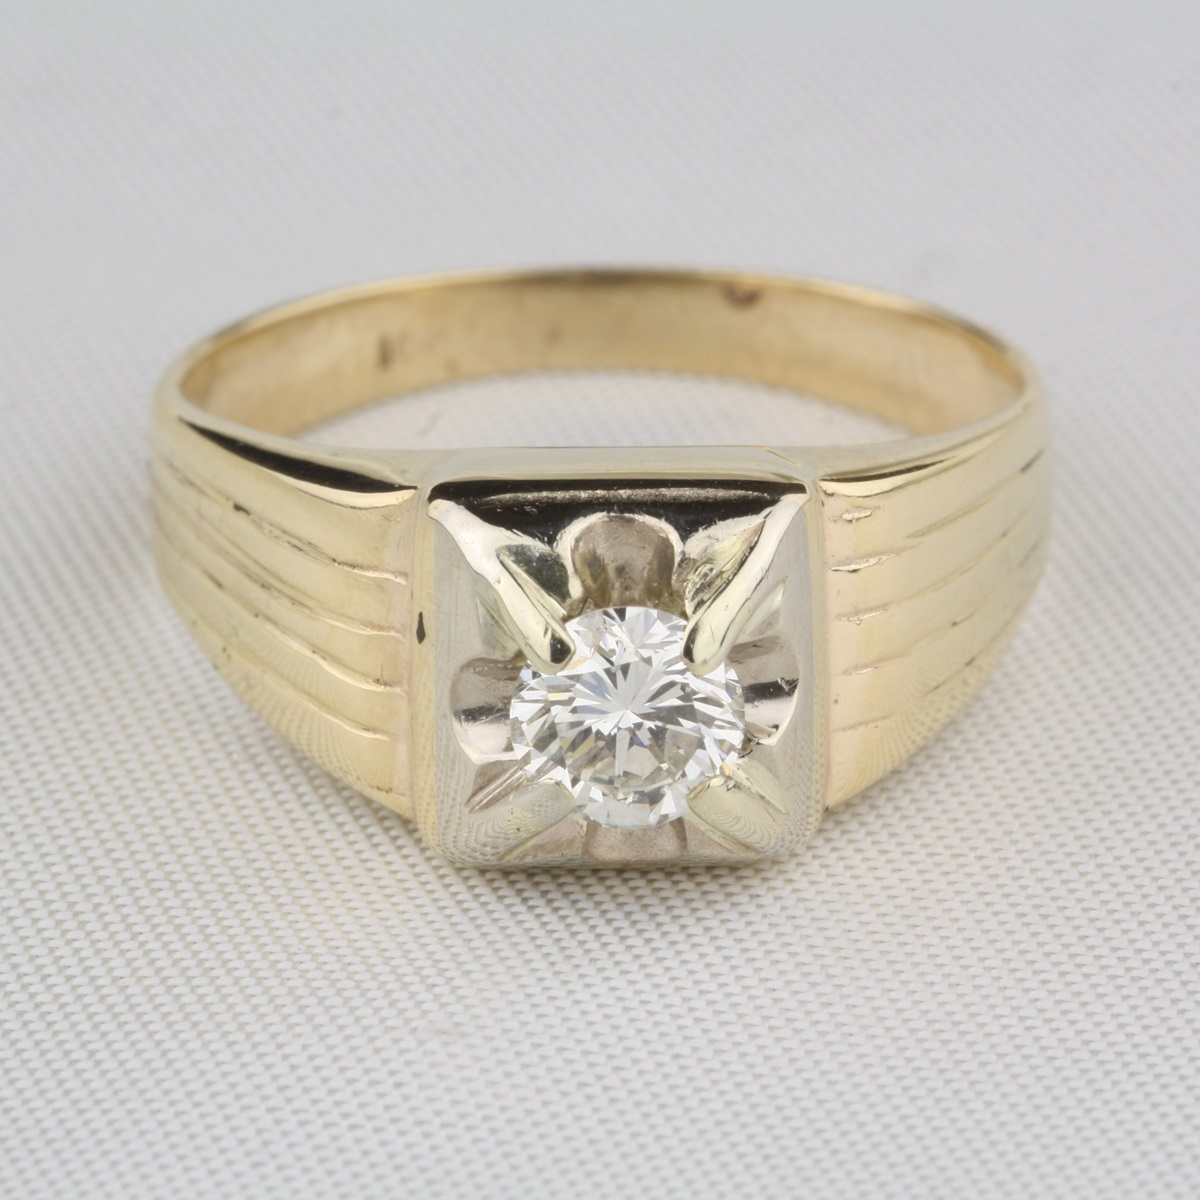 s size ring yg carat cut image engagement stunning itm is diamond princess loading